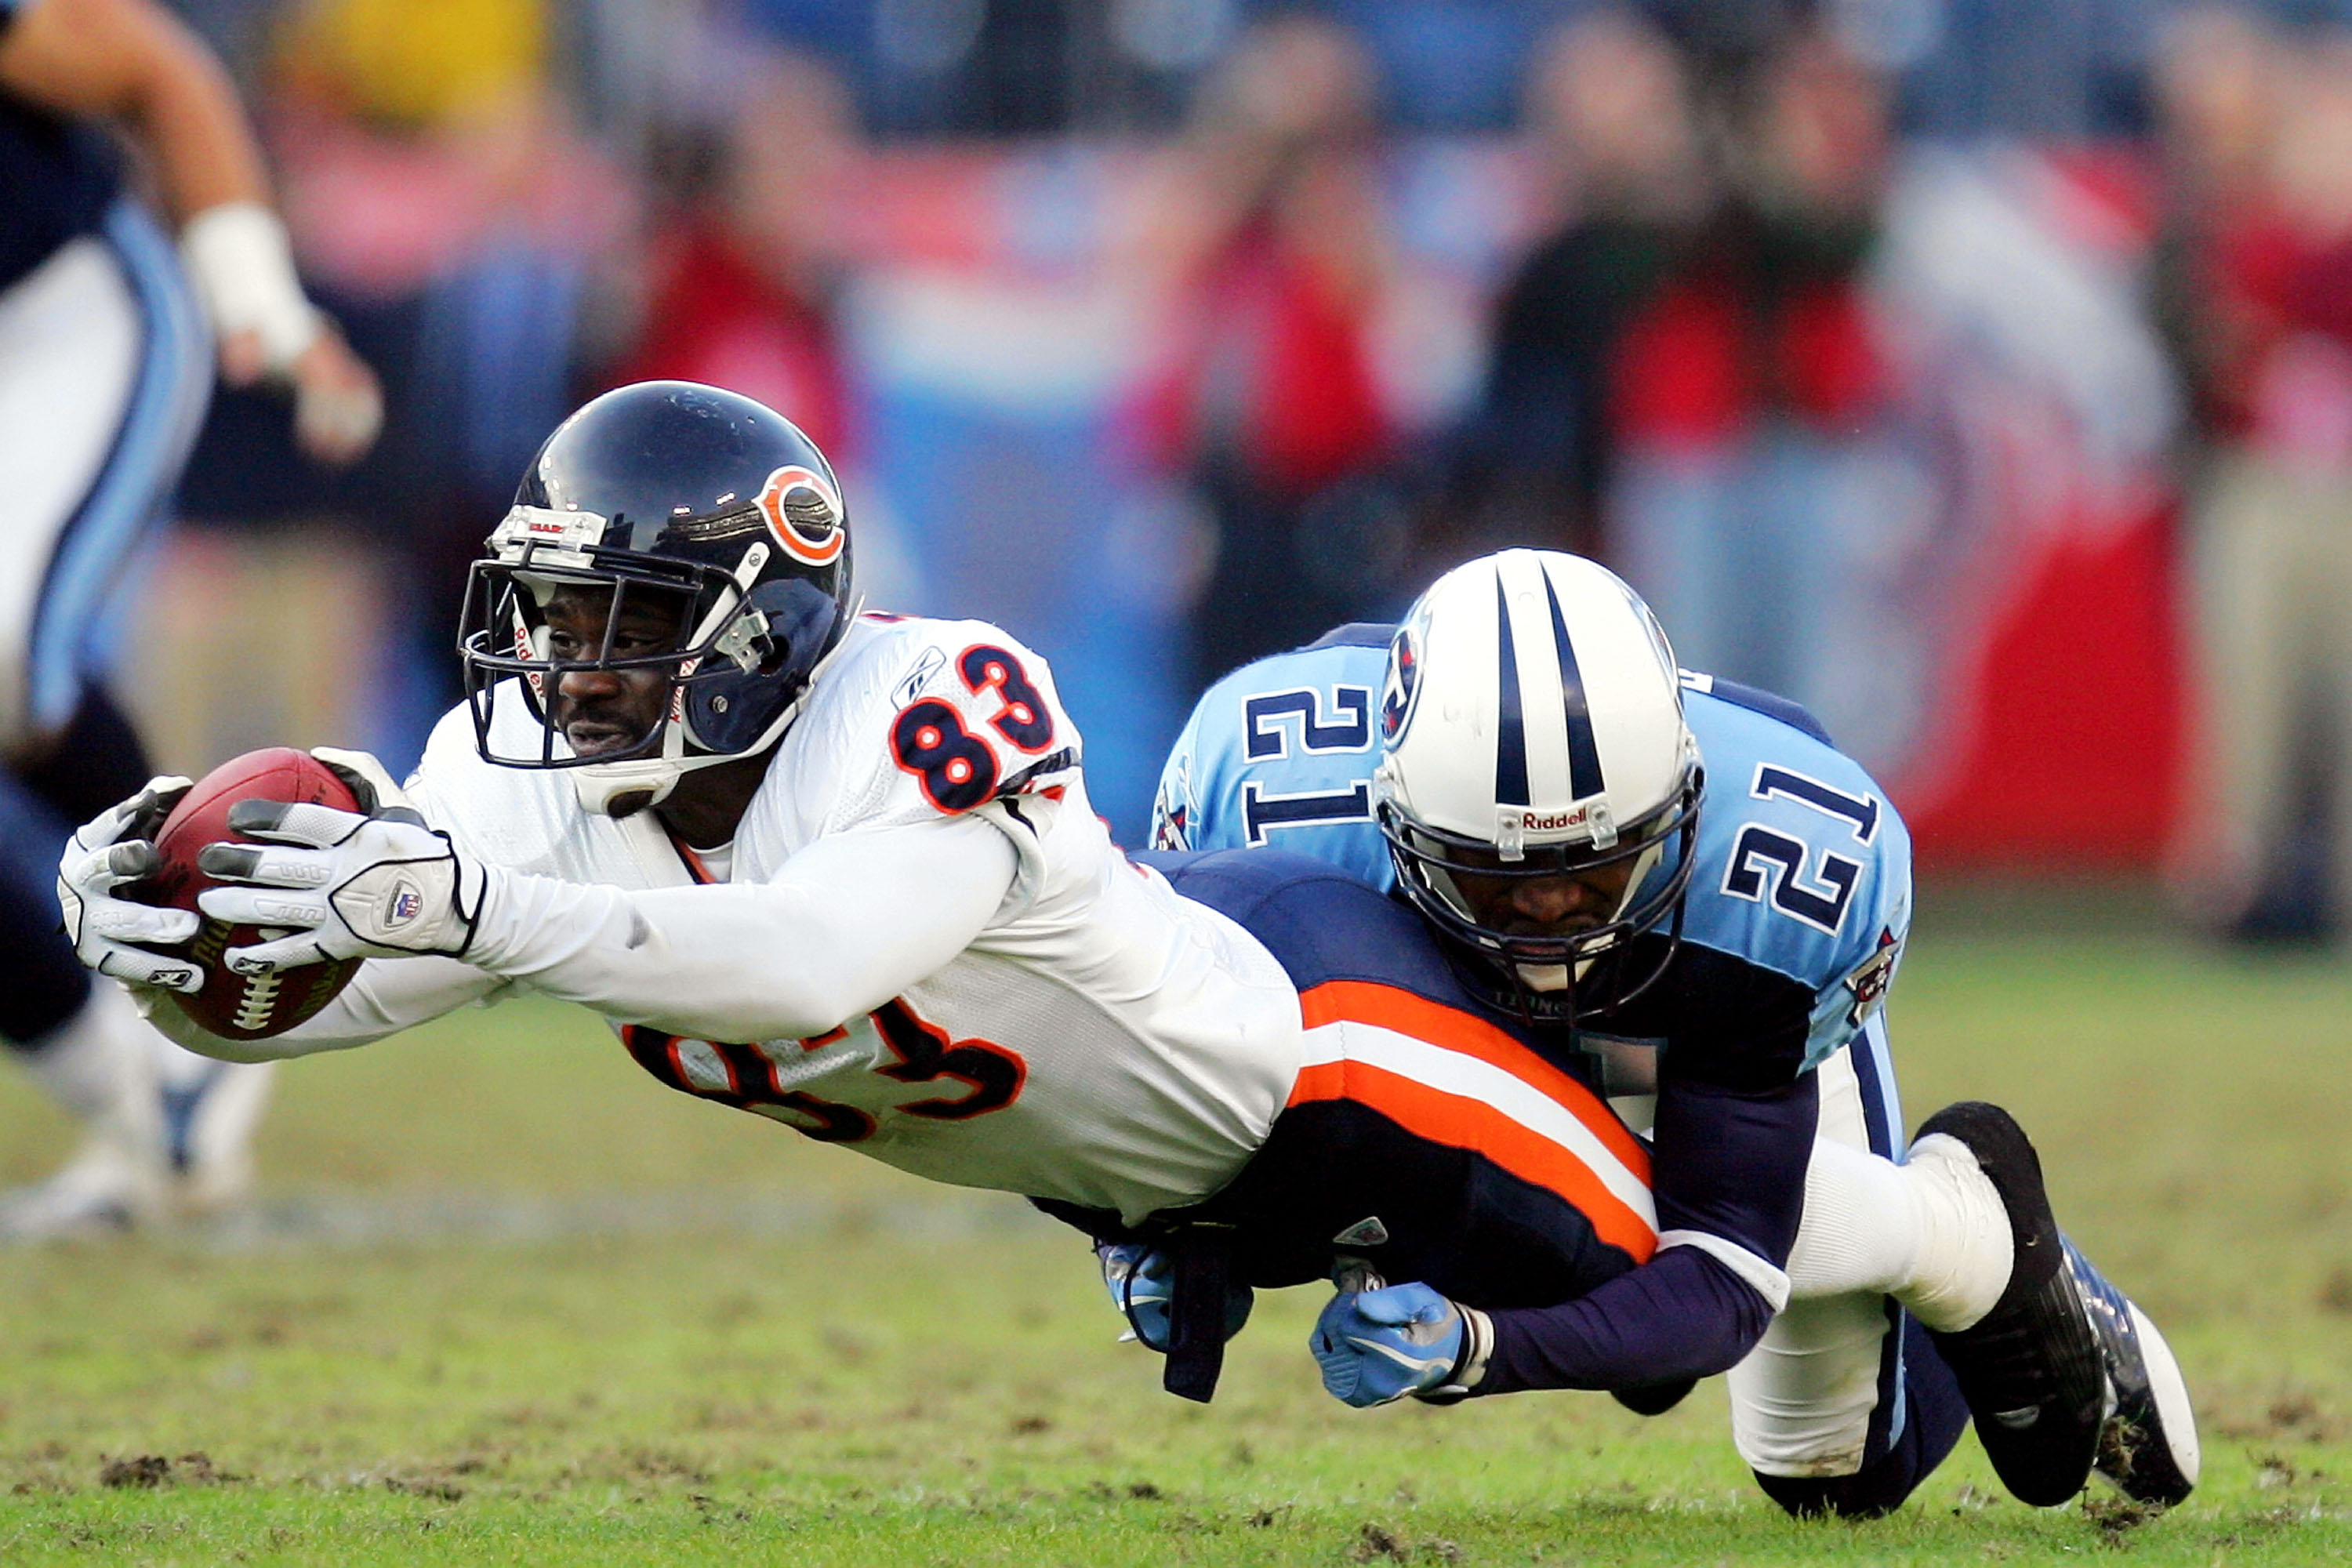 David Terrell stretches the ball out during a Bears game